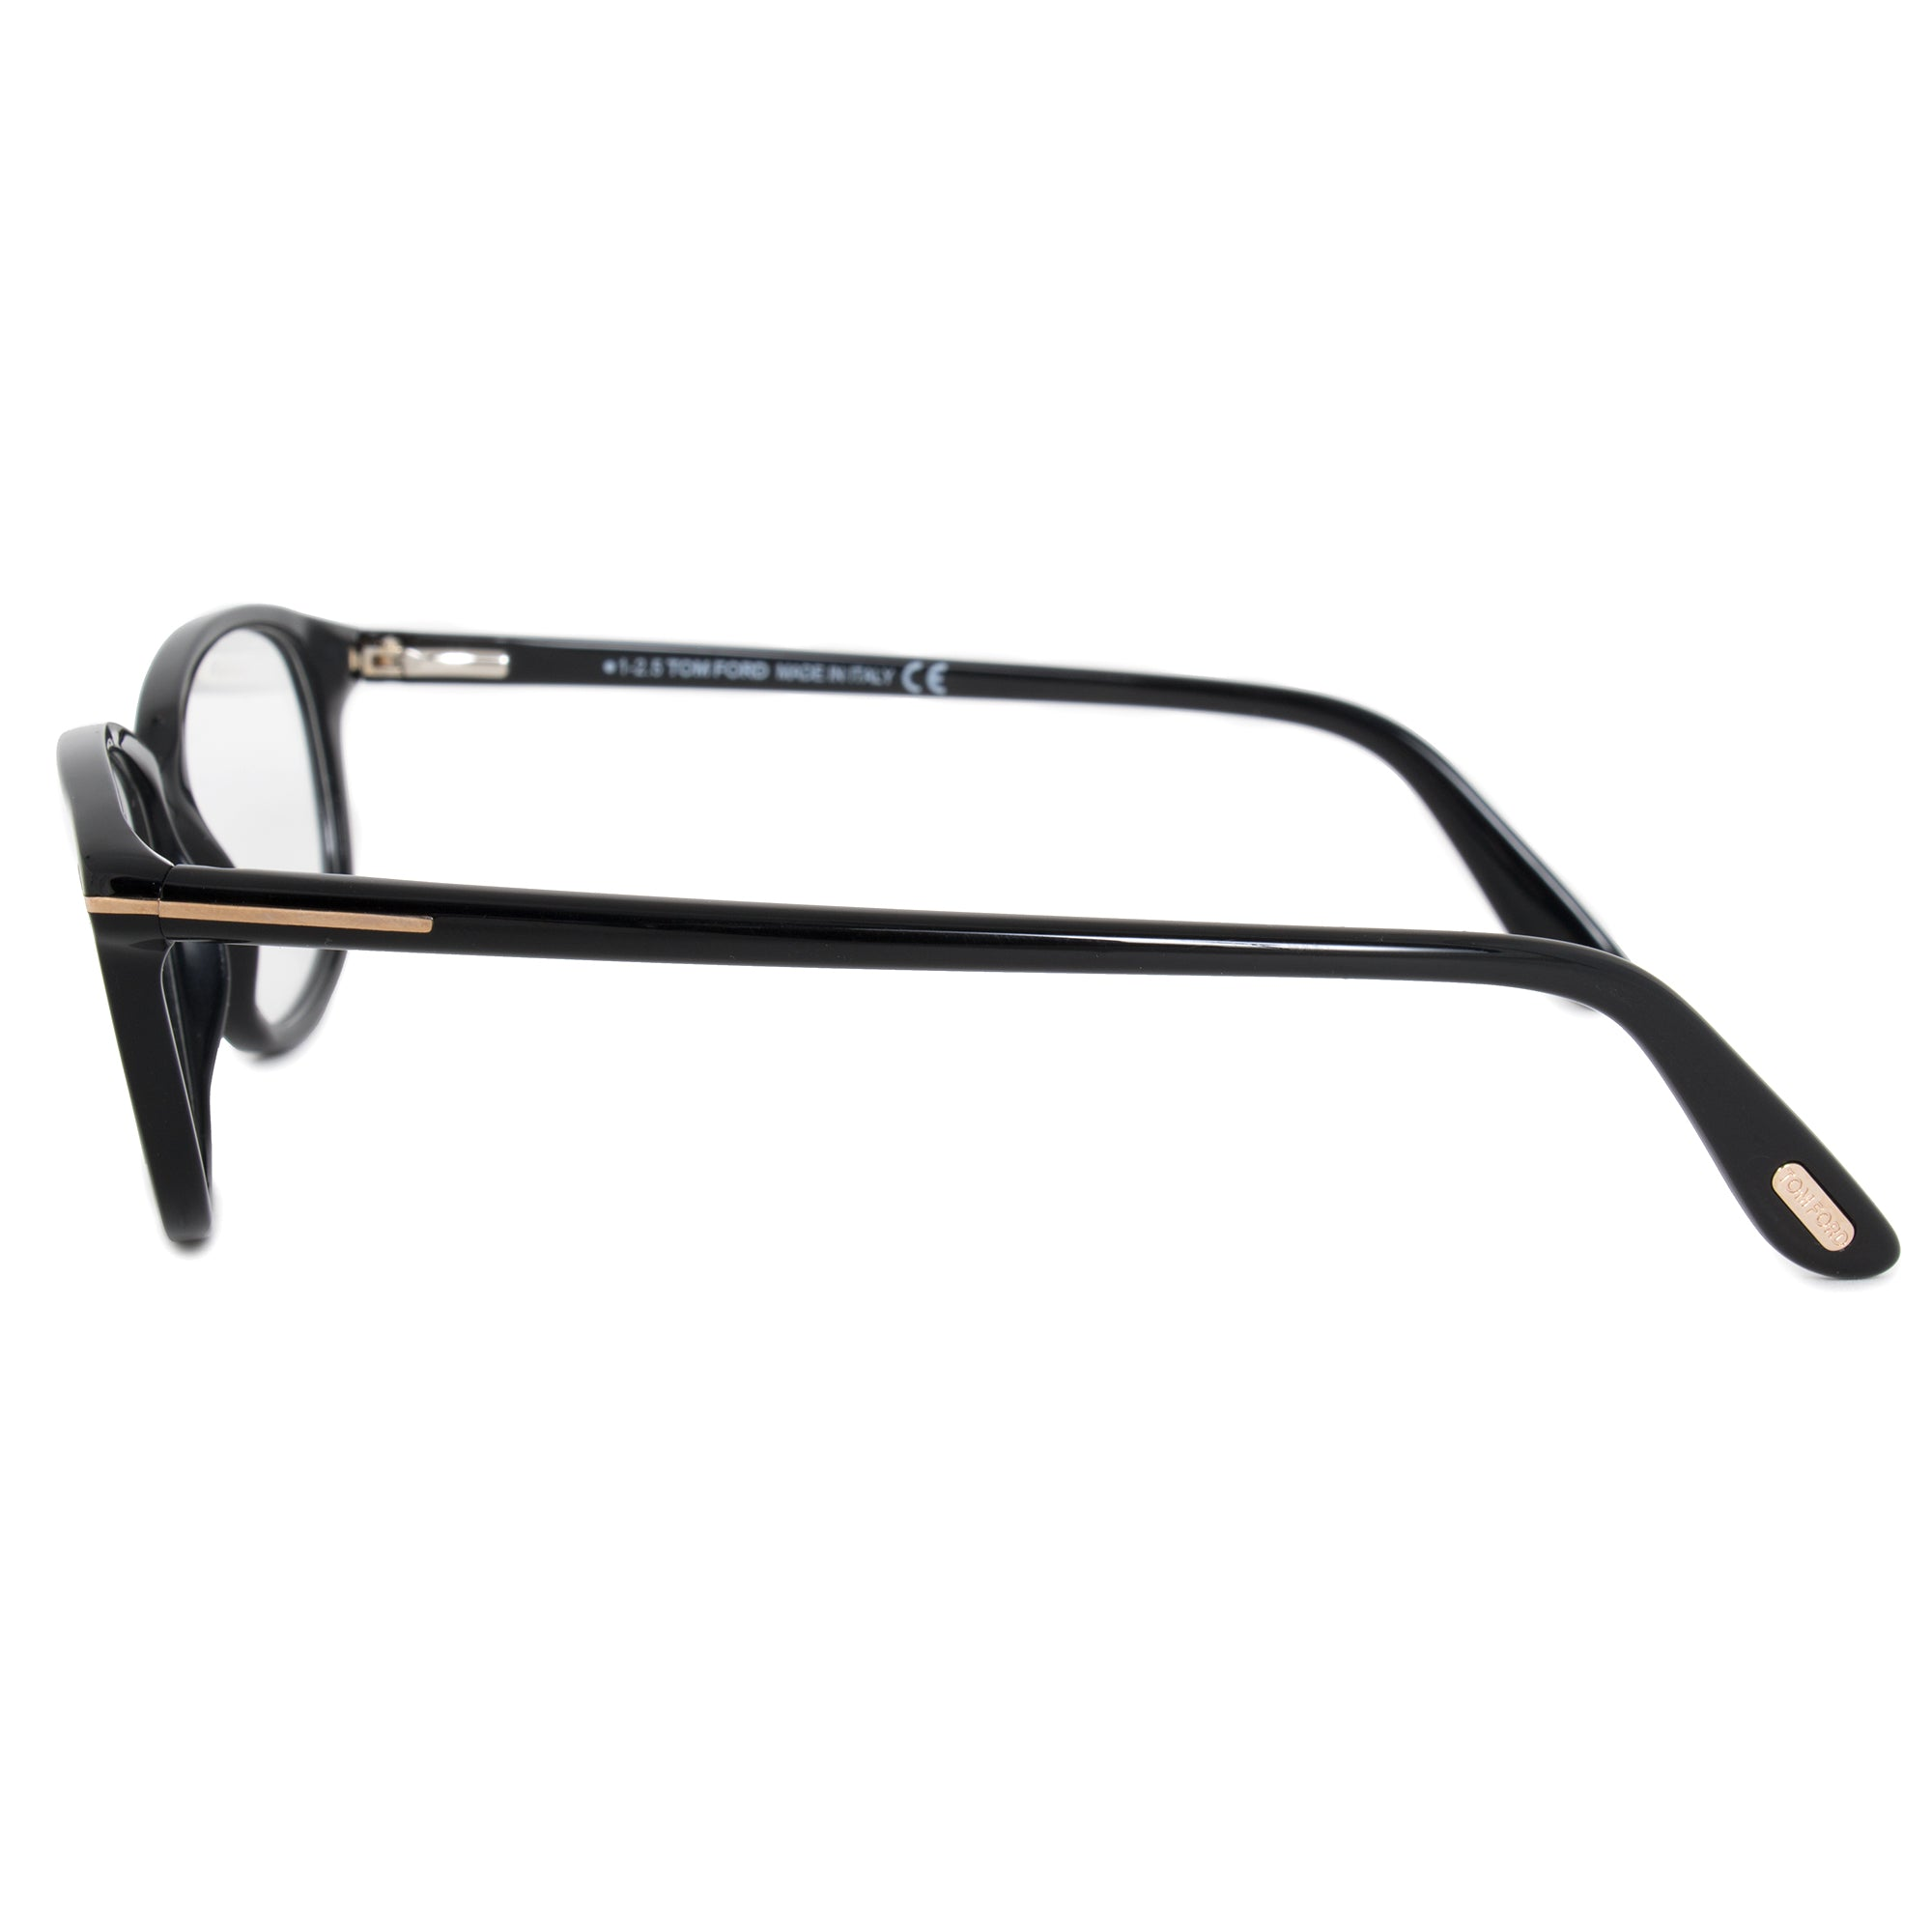 Tom Ford FT5316 Square | Black | Eyeglass Frame